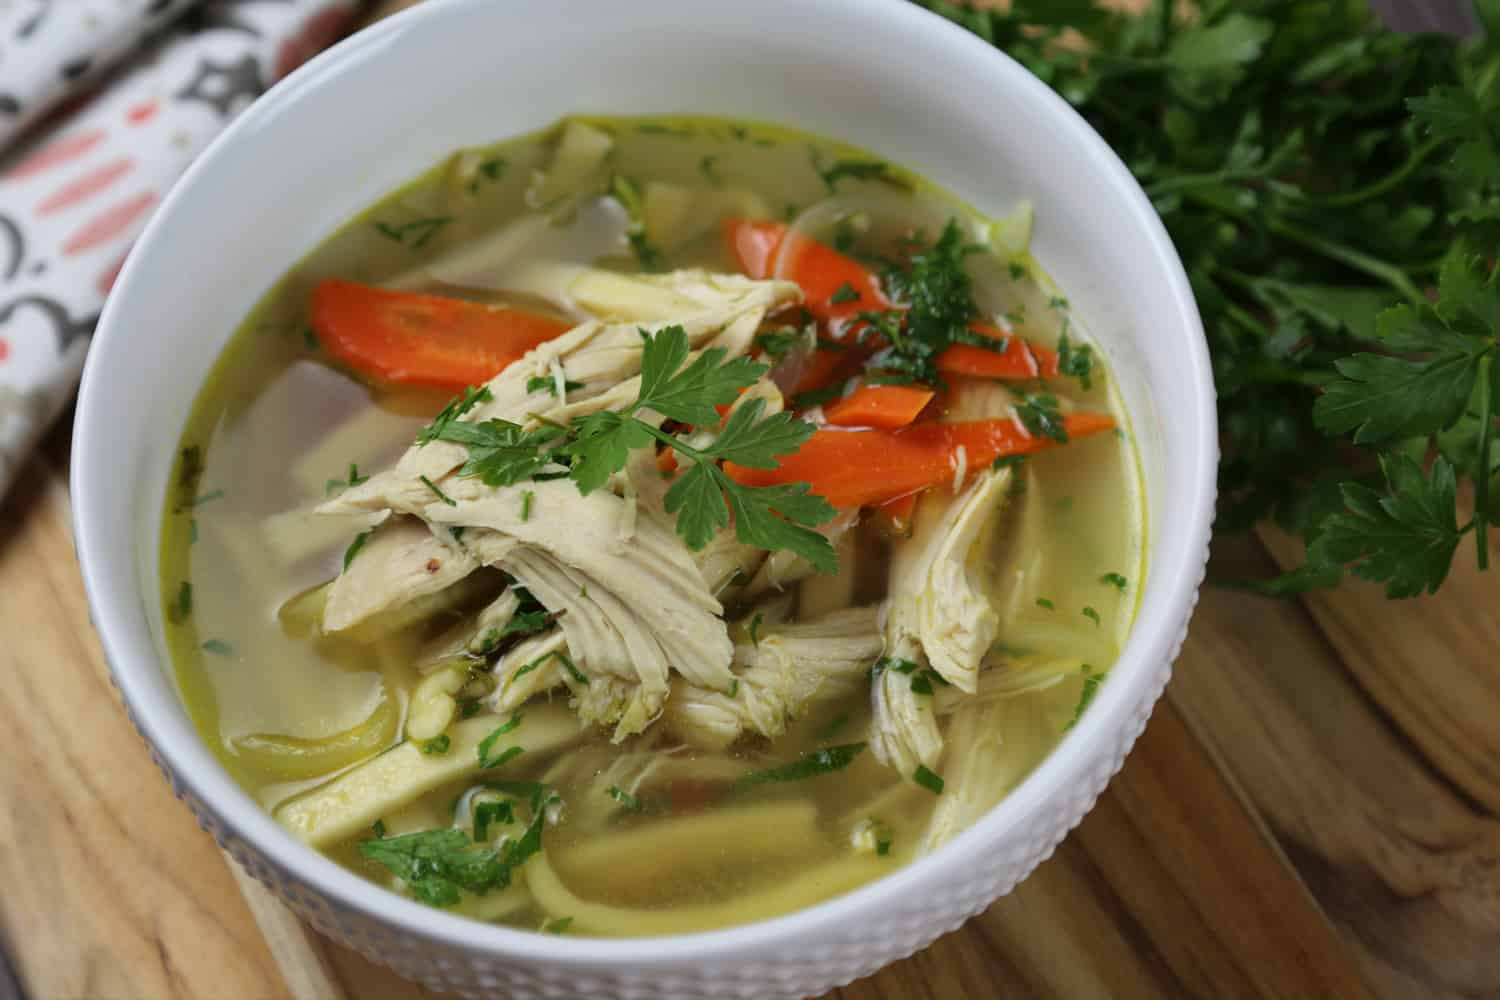 House-made Soups from Scratch Healthcare Food Service